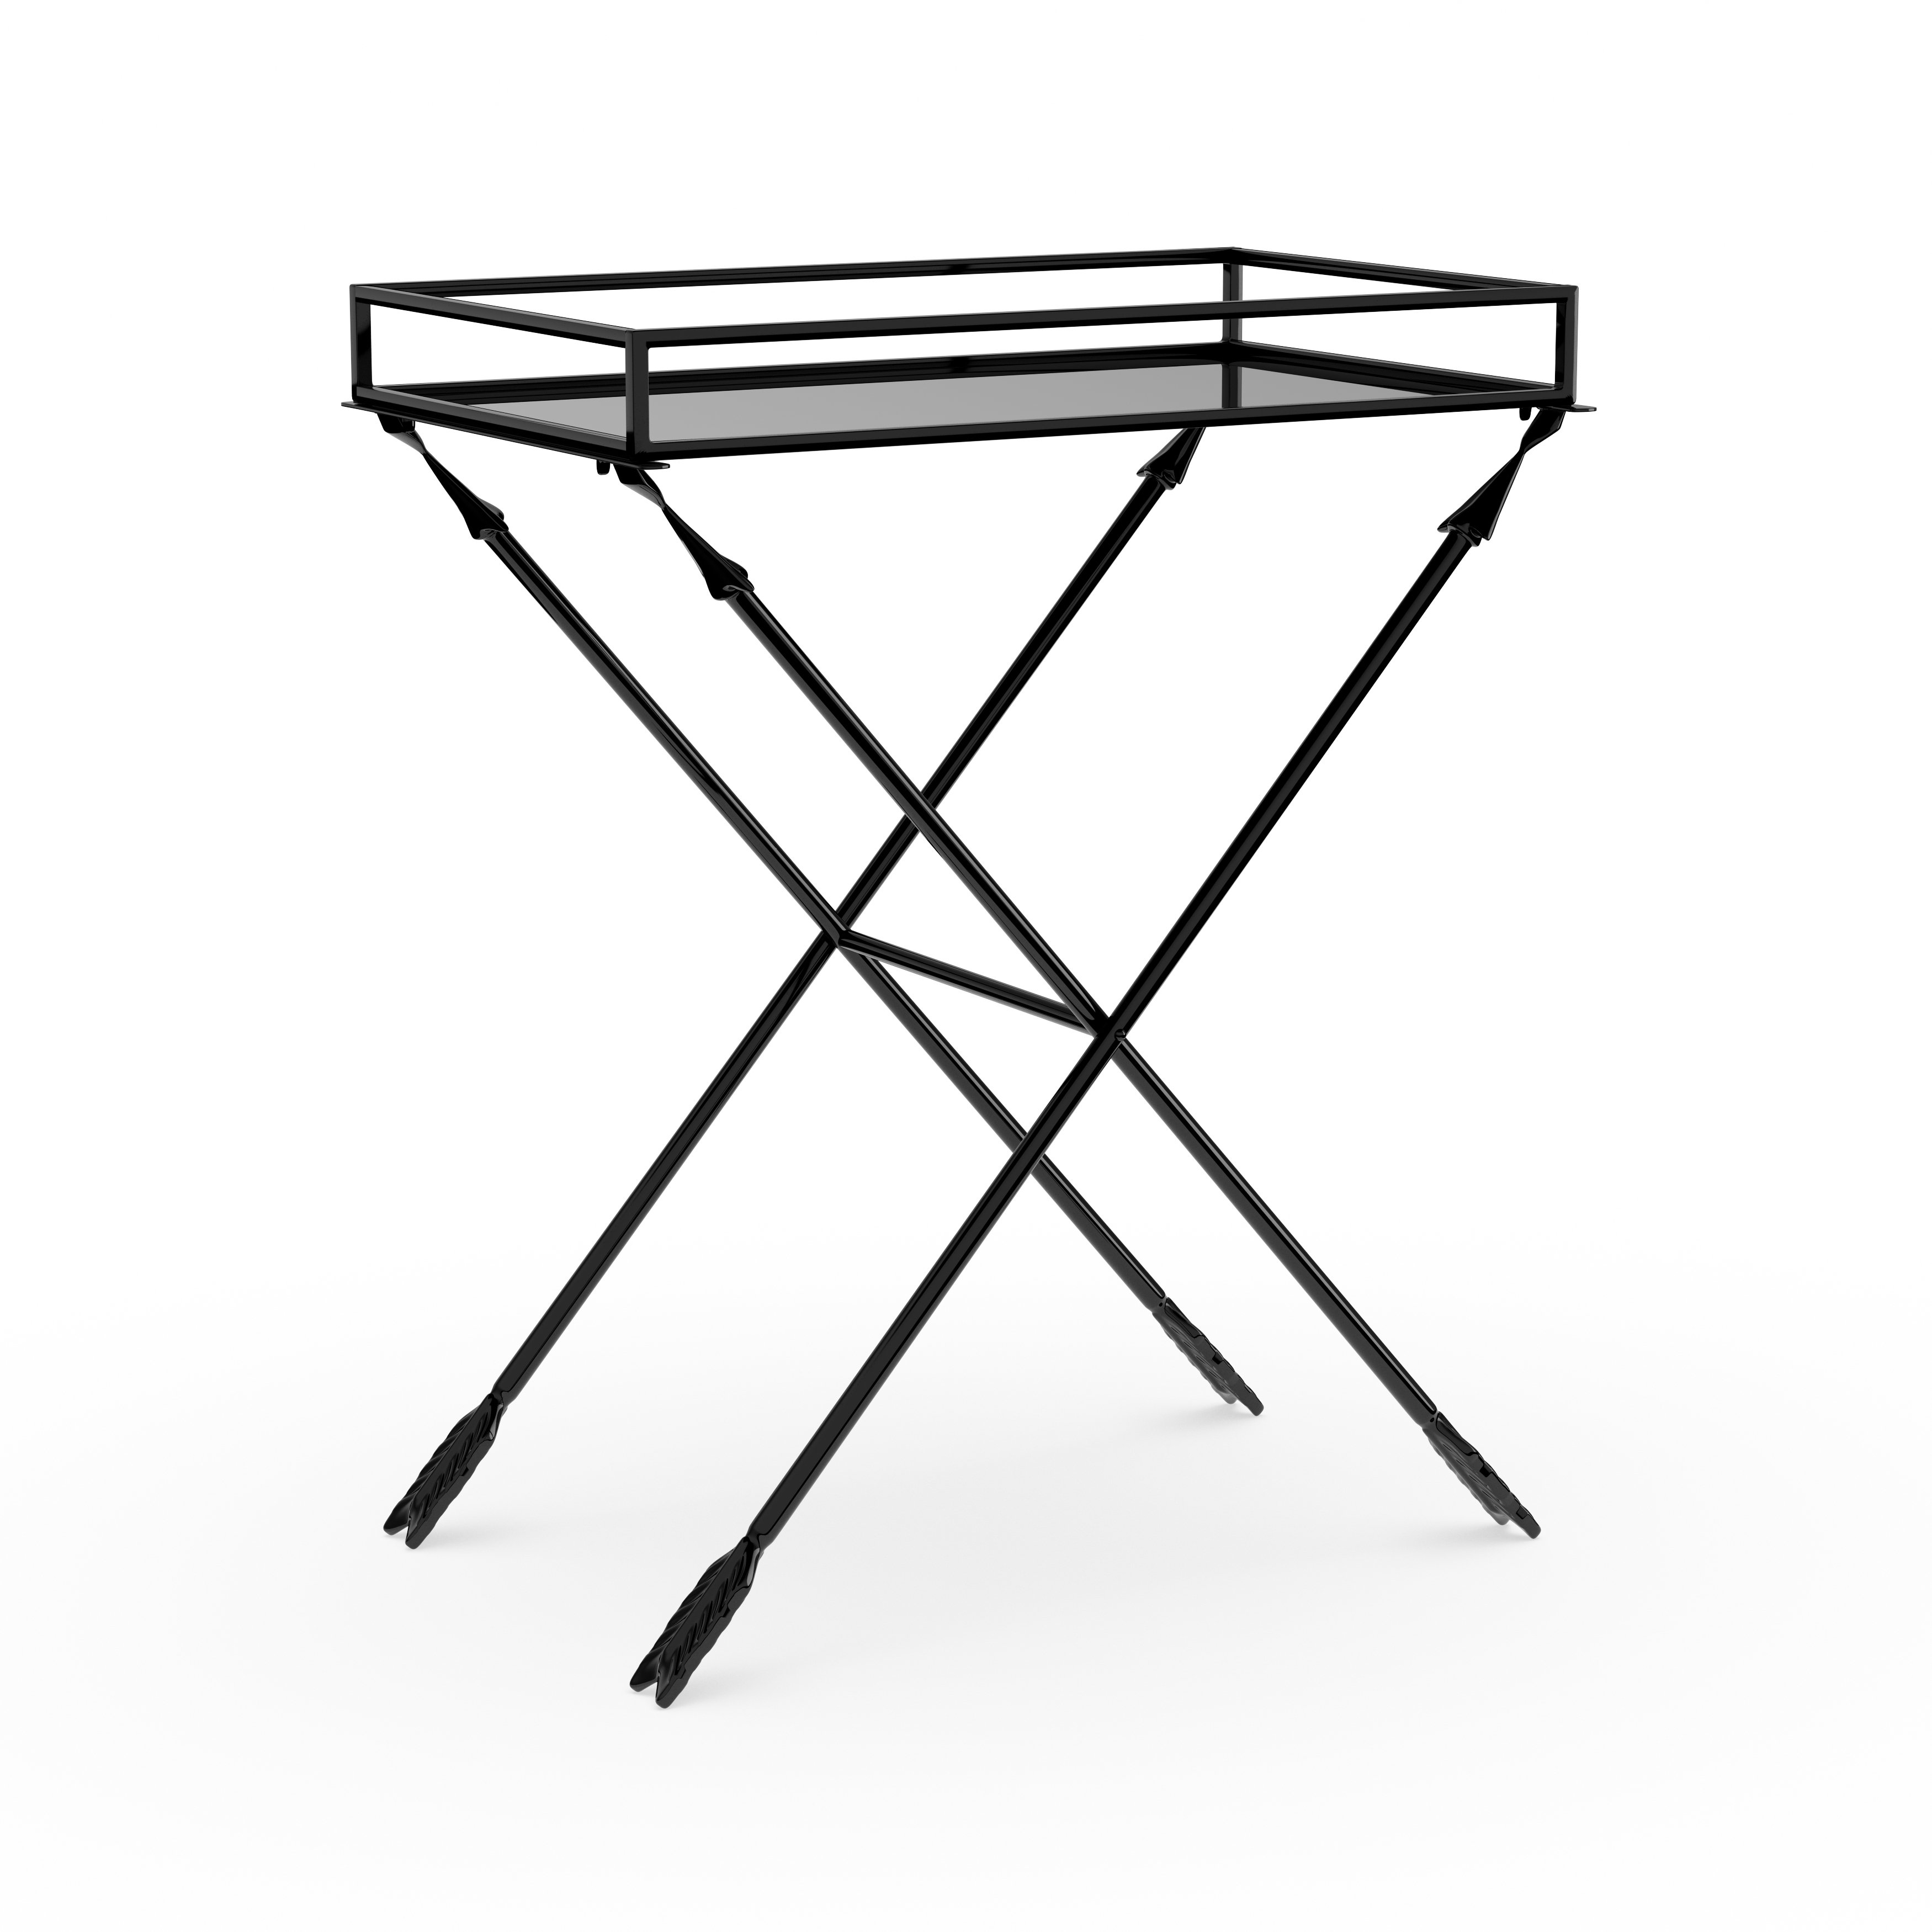 silver orchid jalabert arrow metal accent table with mirrored tray top free shipping today round coffee sets ikea bedroom cabinets pier coupon code small side covers lamp lighted